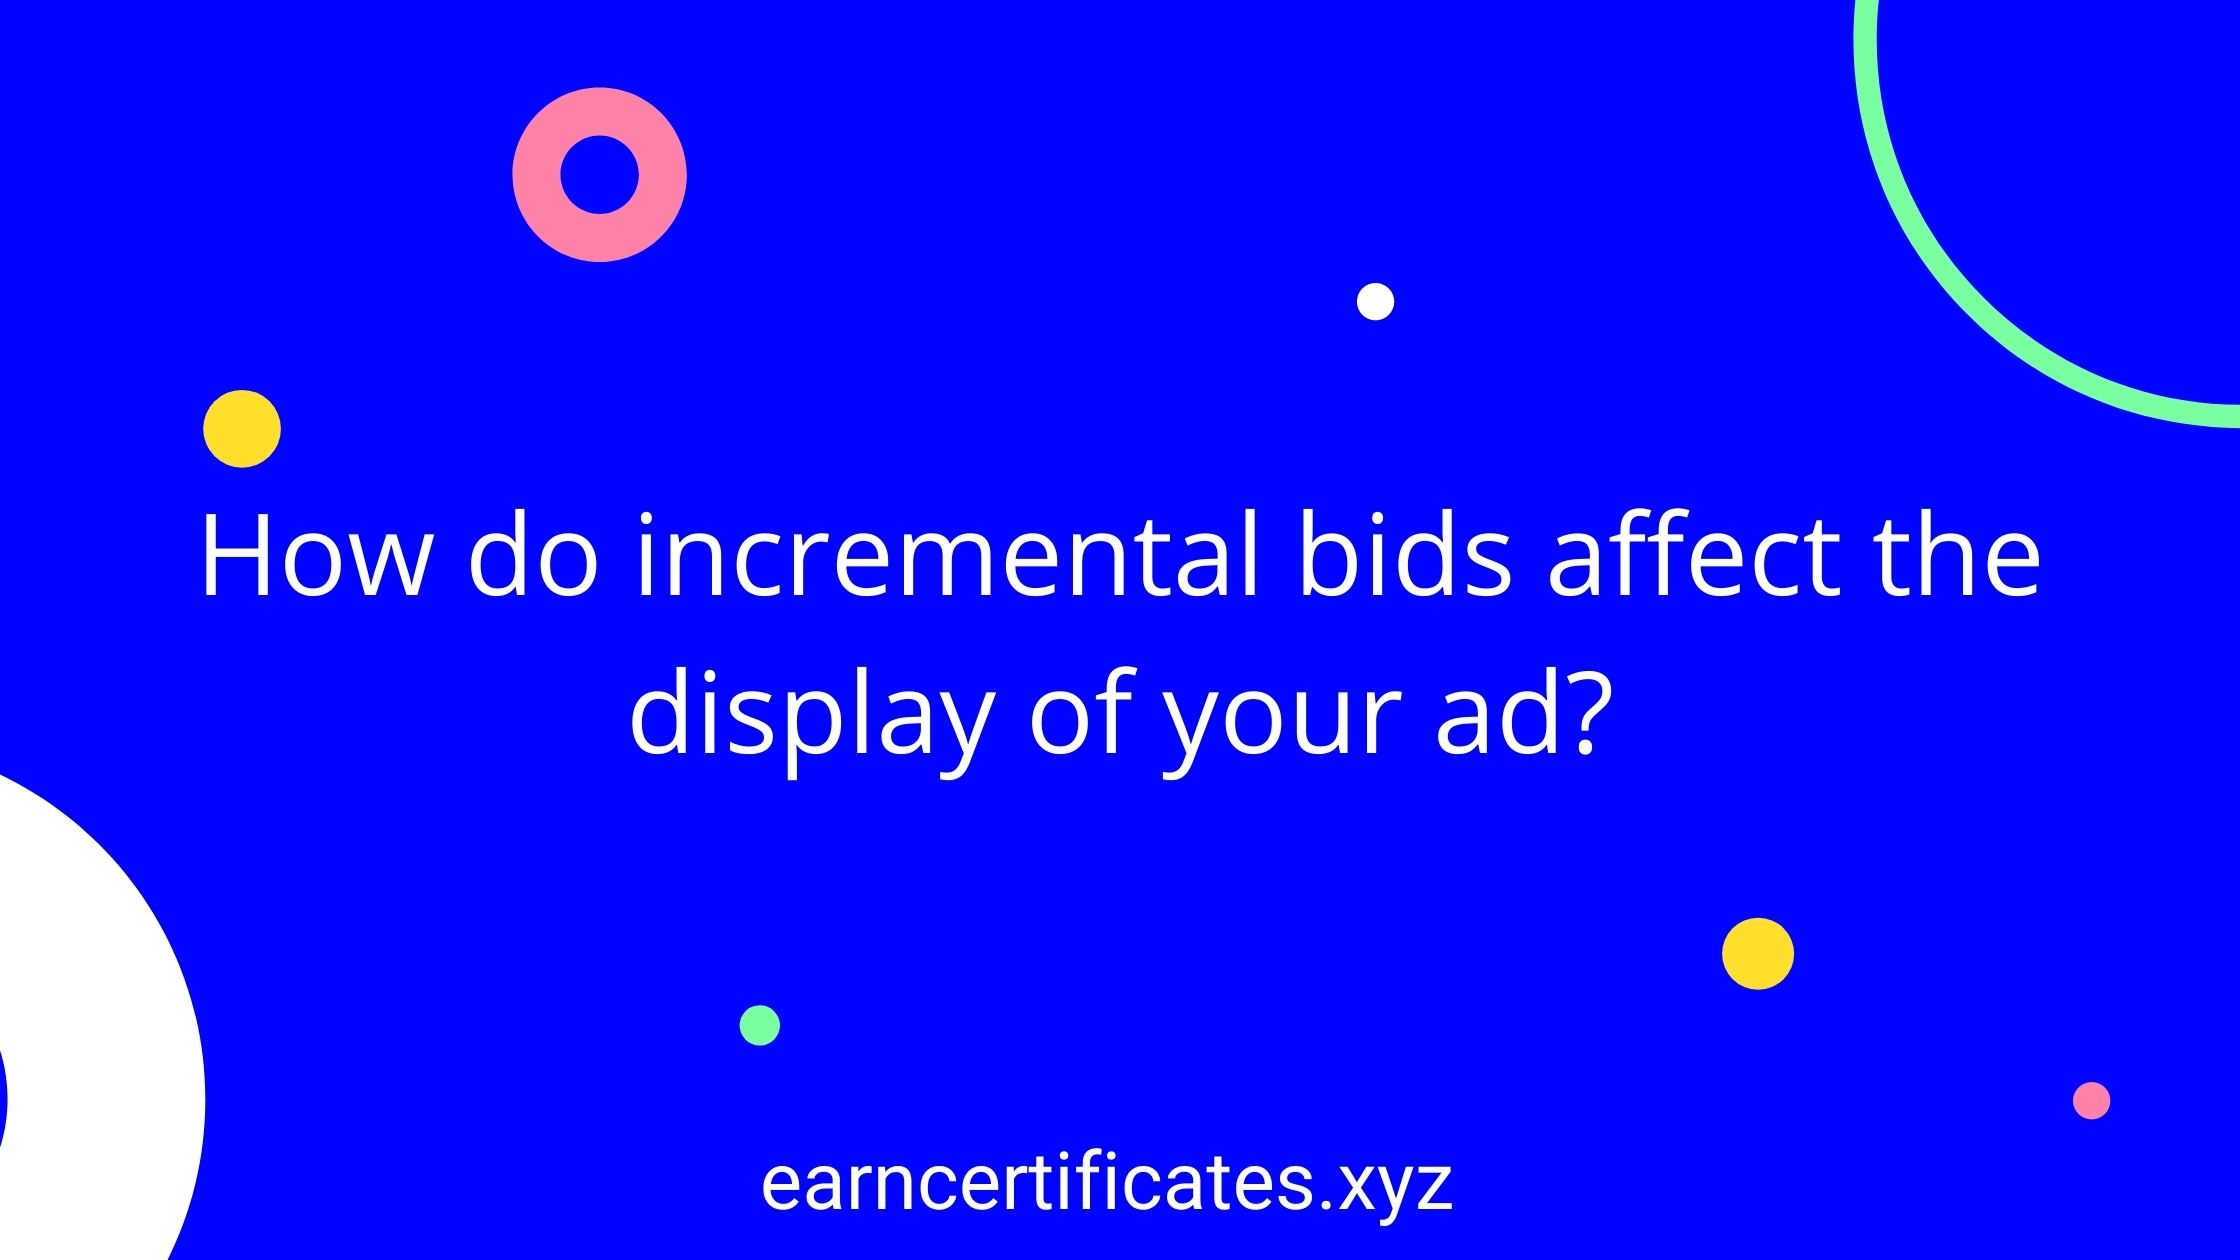 How do incremental bids affect the display of your ad?